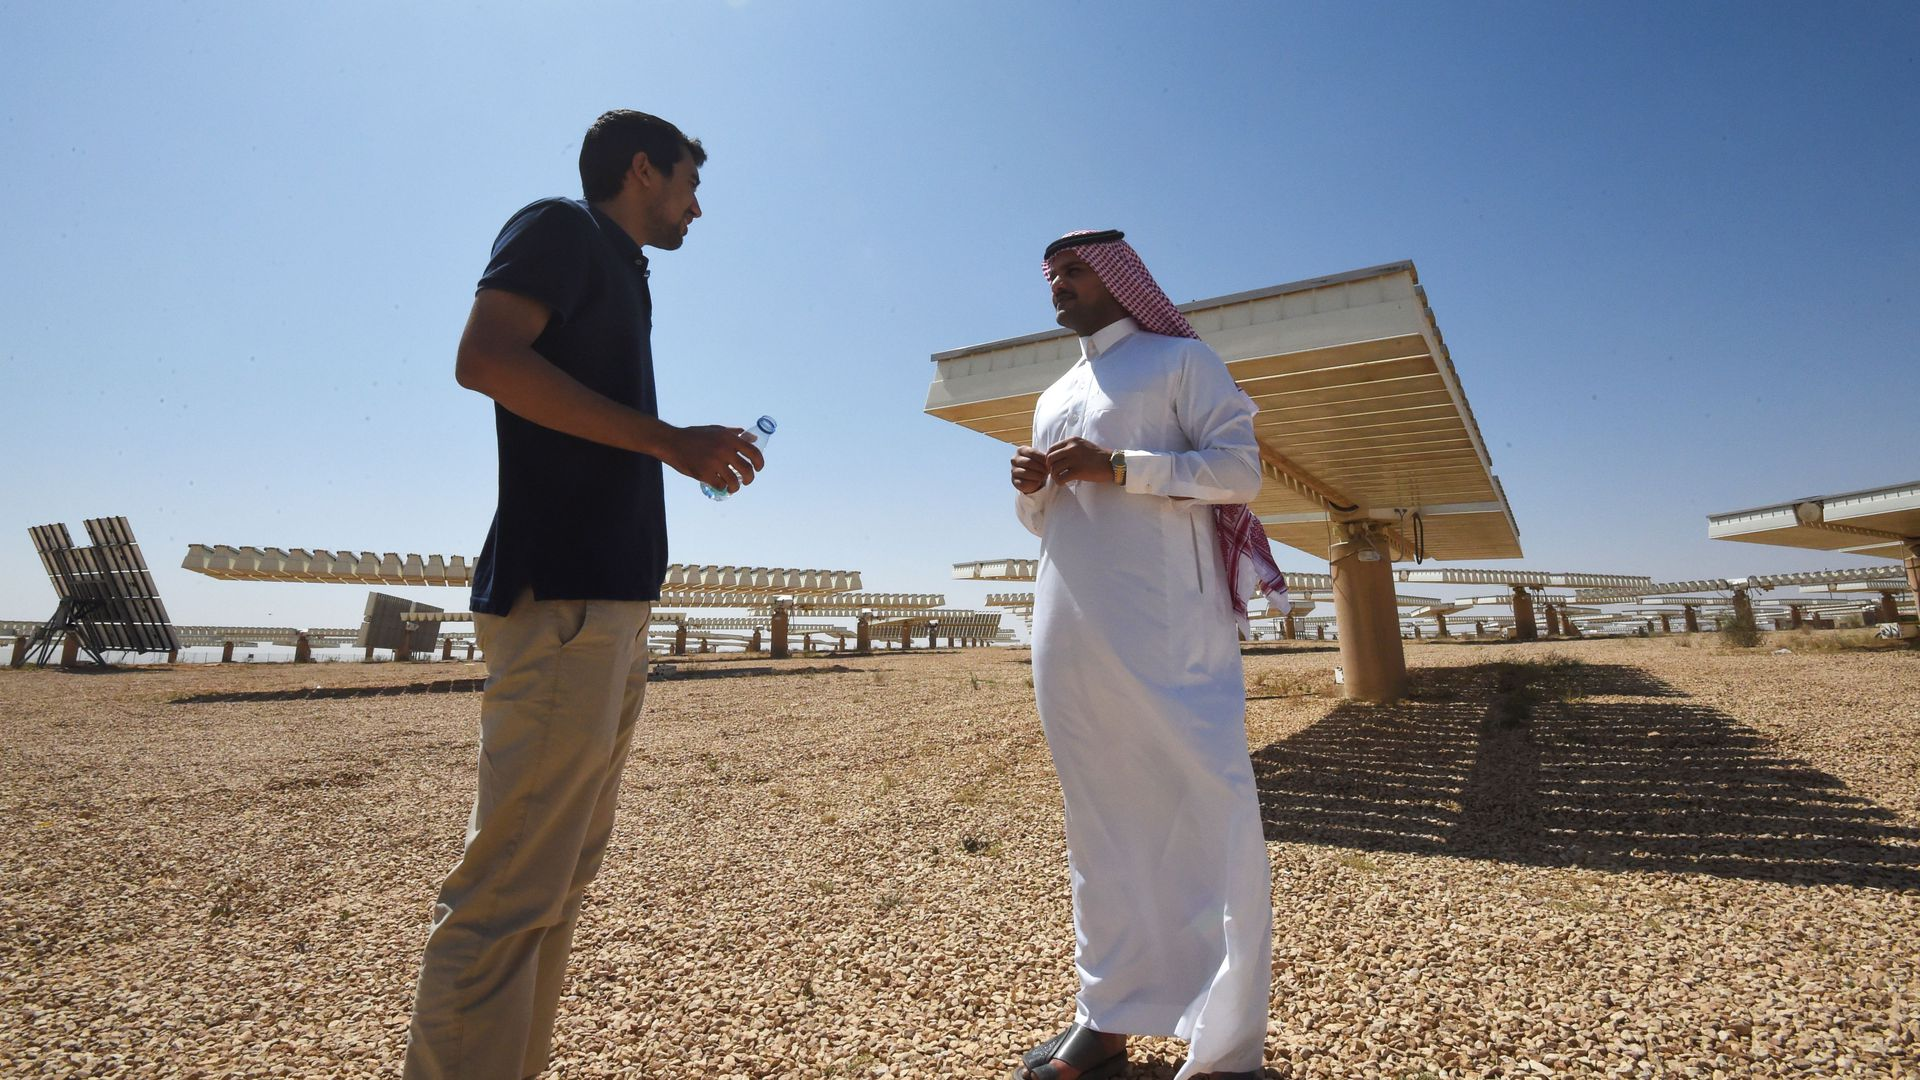 A Saudi man speaks to a journalist at a solar plant in Uyayna, north of Riyadh, on March 29, 2018.